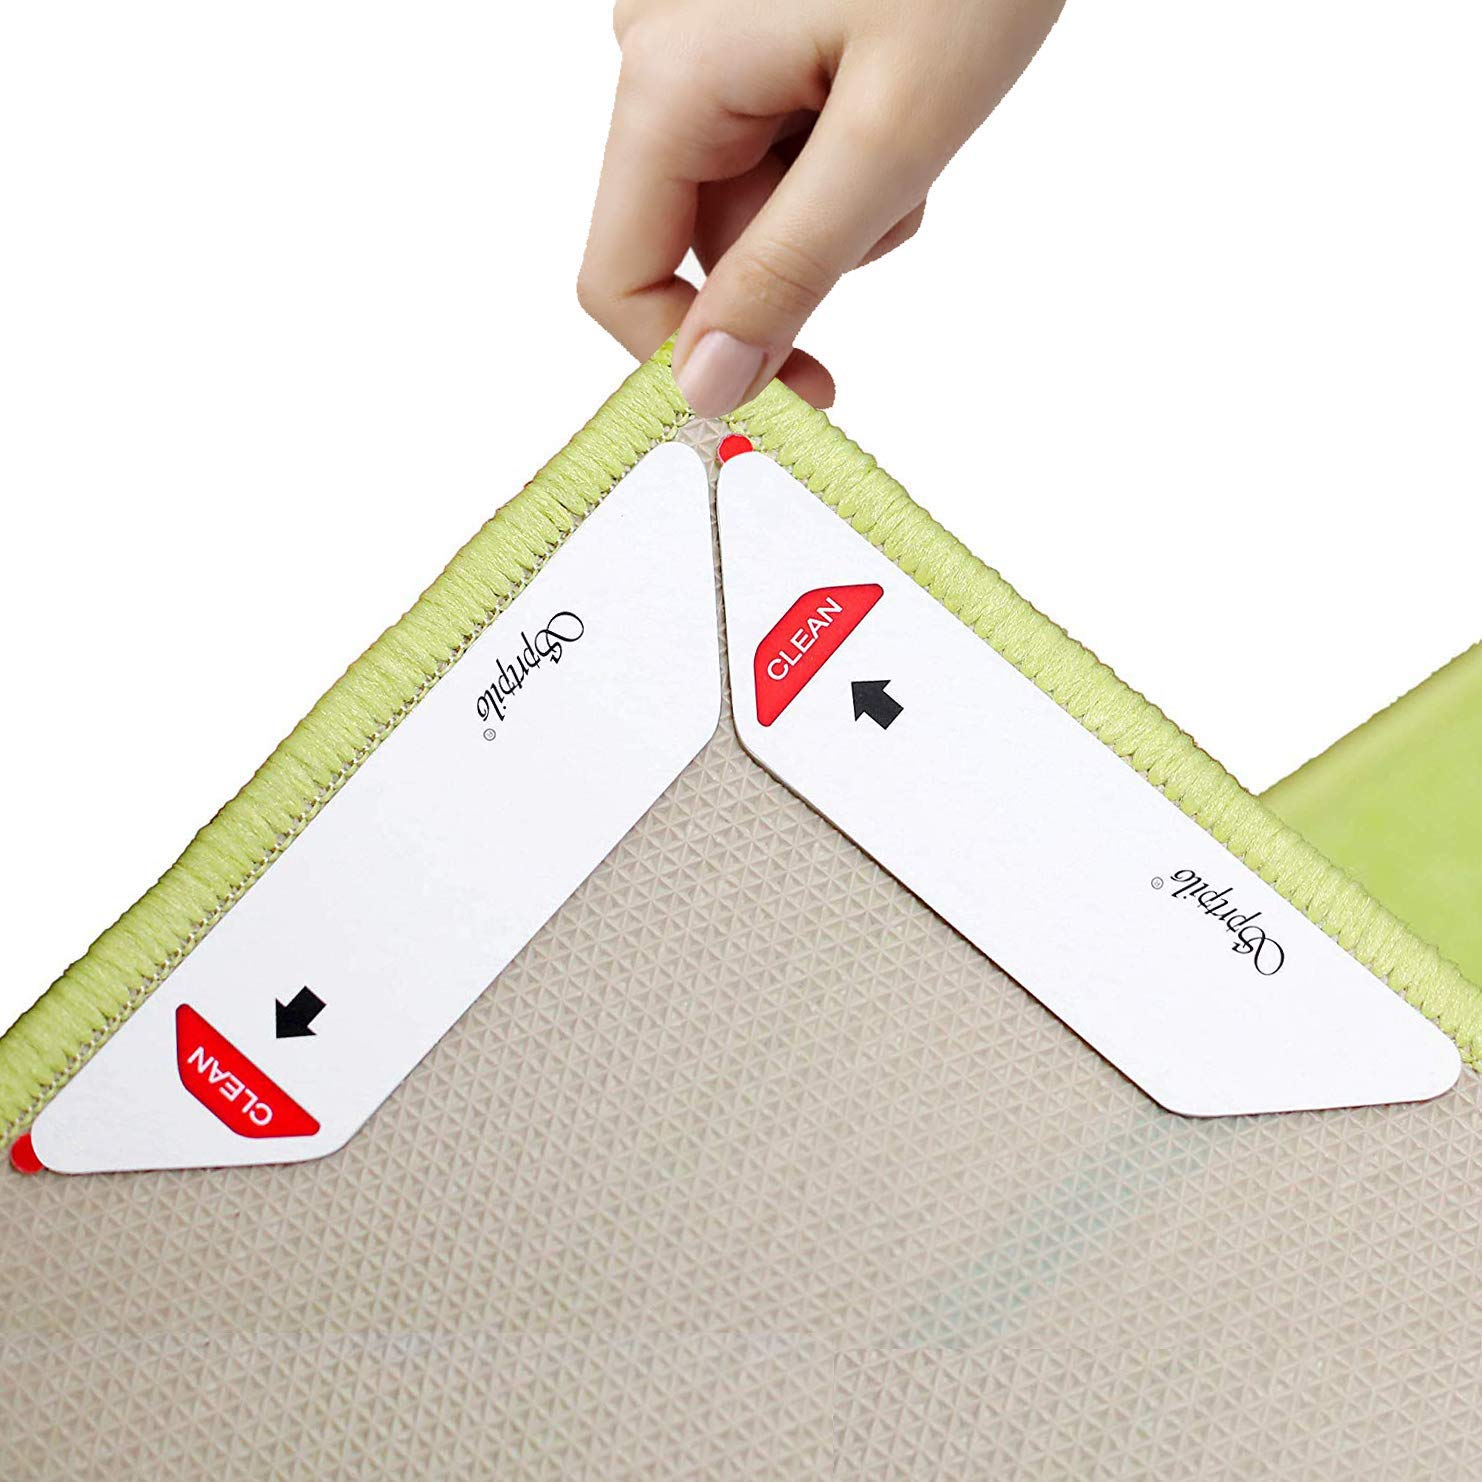 Sprtpilo Rug Gripper, 8 PCs Non Slip Carpet Tape, Keeps Your Rug in Place and Makes Corners Flat. Premium Carpet Gripper with Renewable Gripper Tape, Suit Well for Indoors or Outdoors Rug (Large)